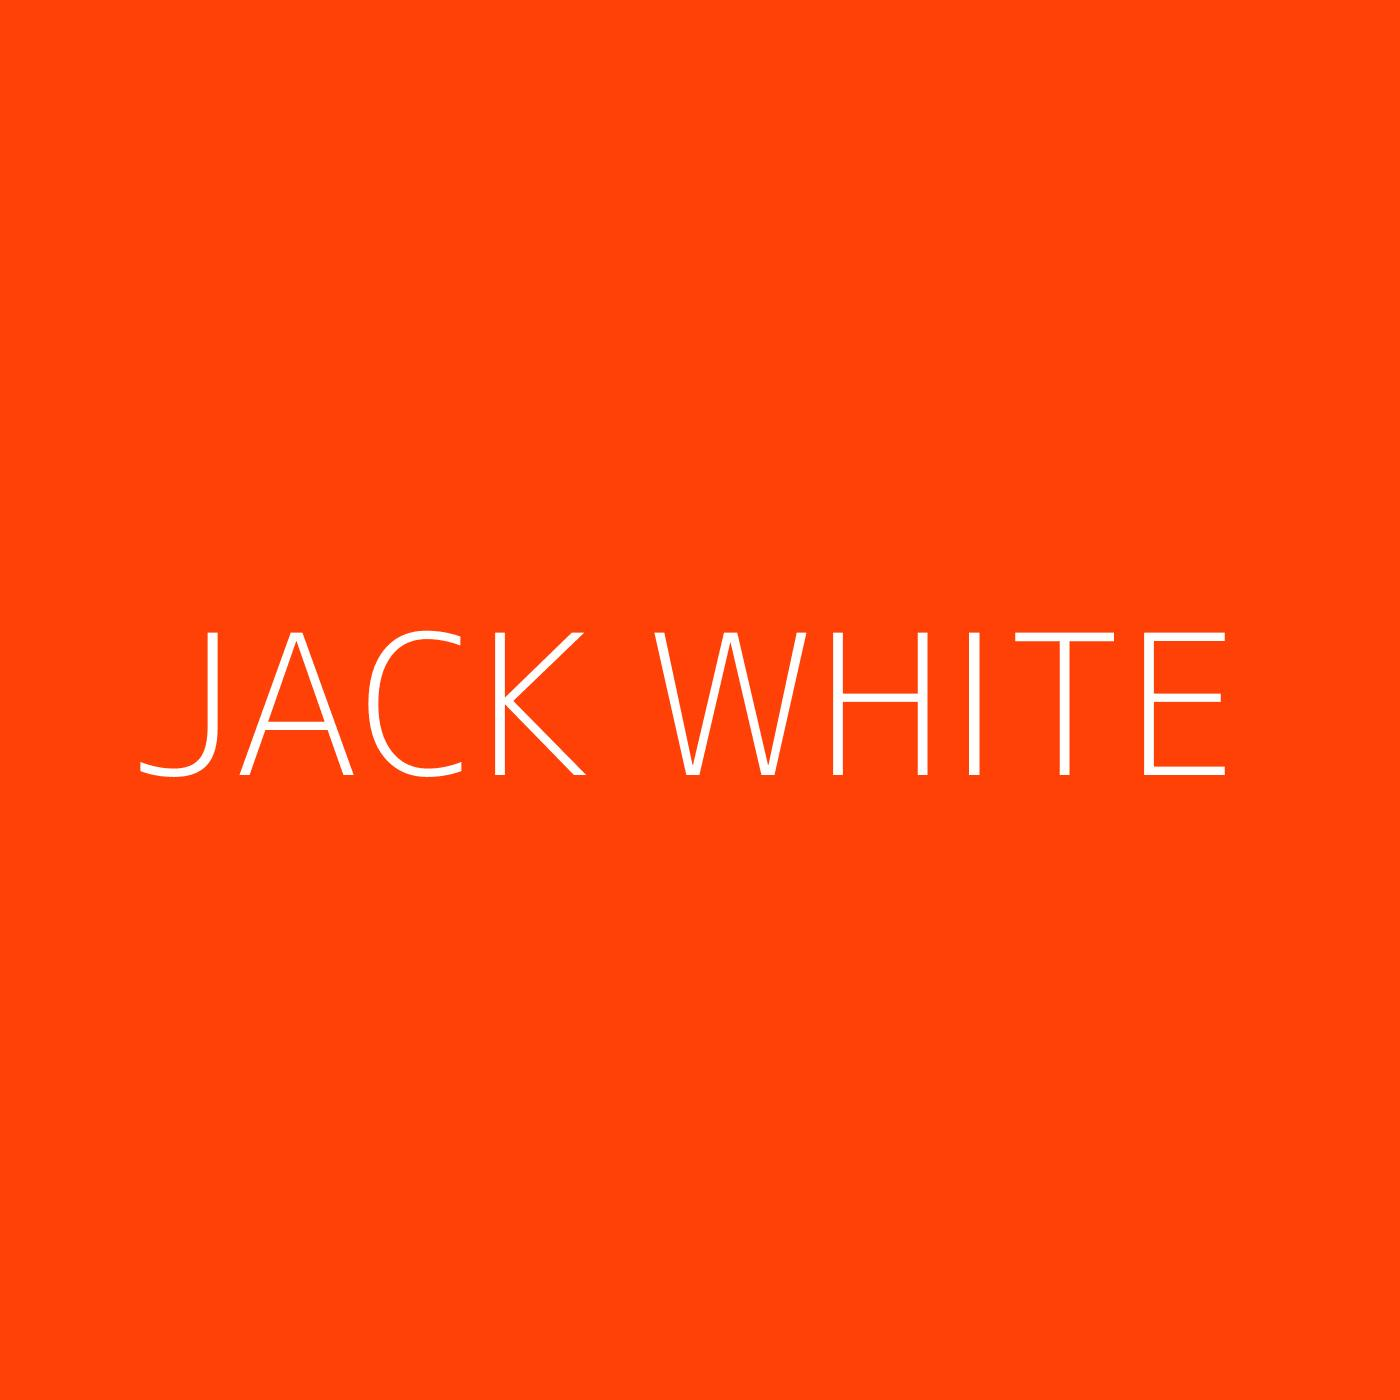 Jack White Playlist Artwork